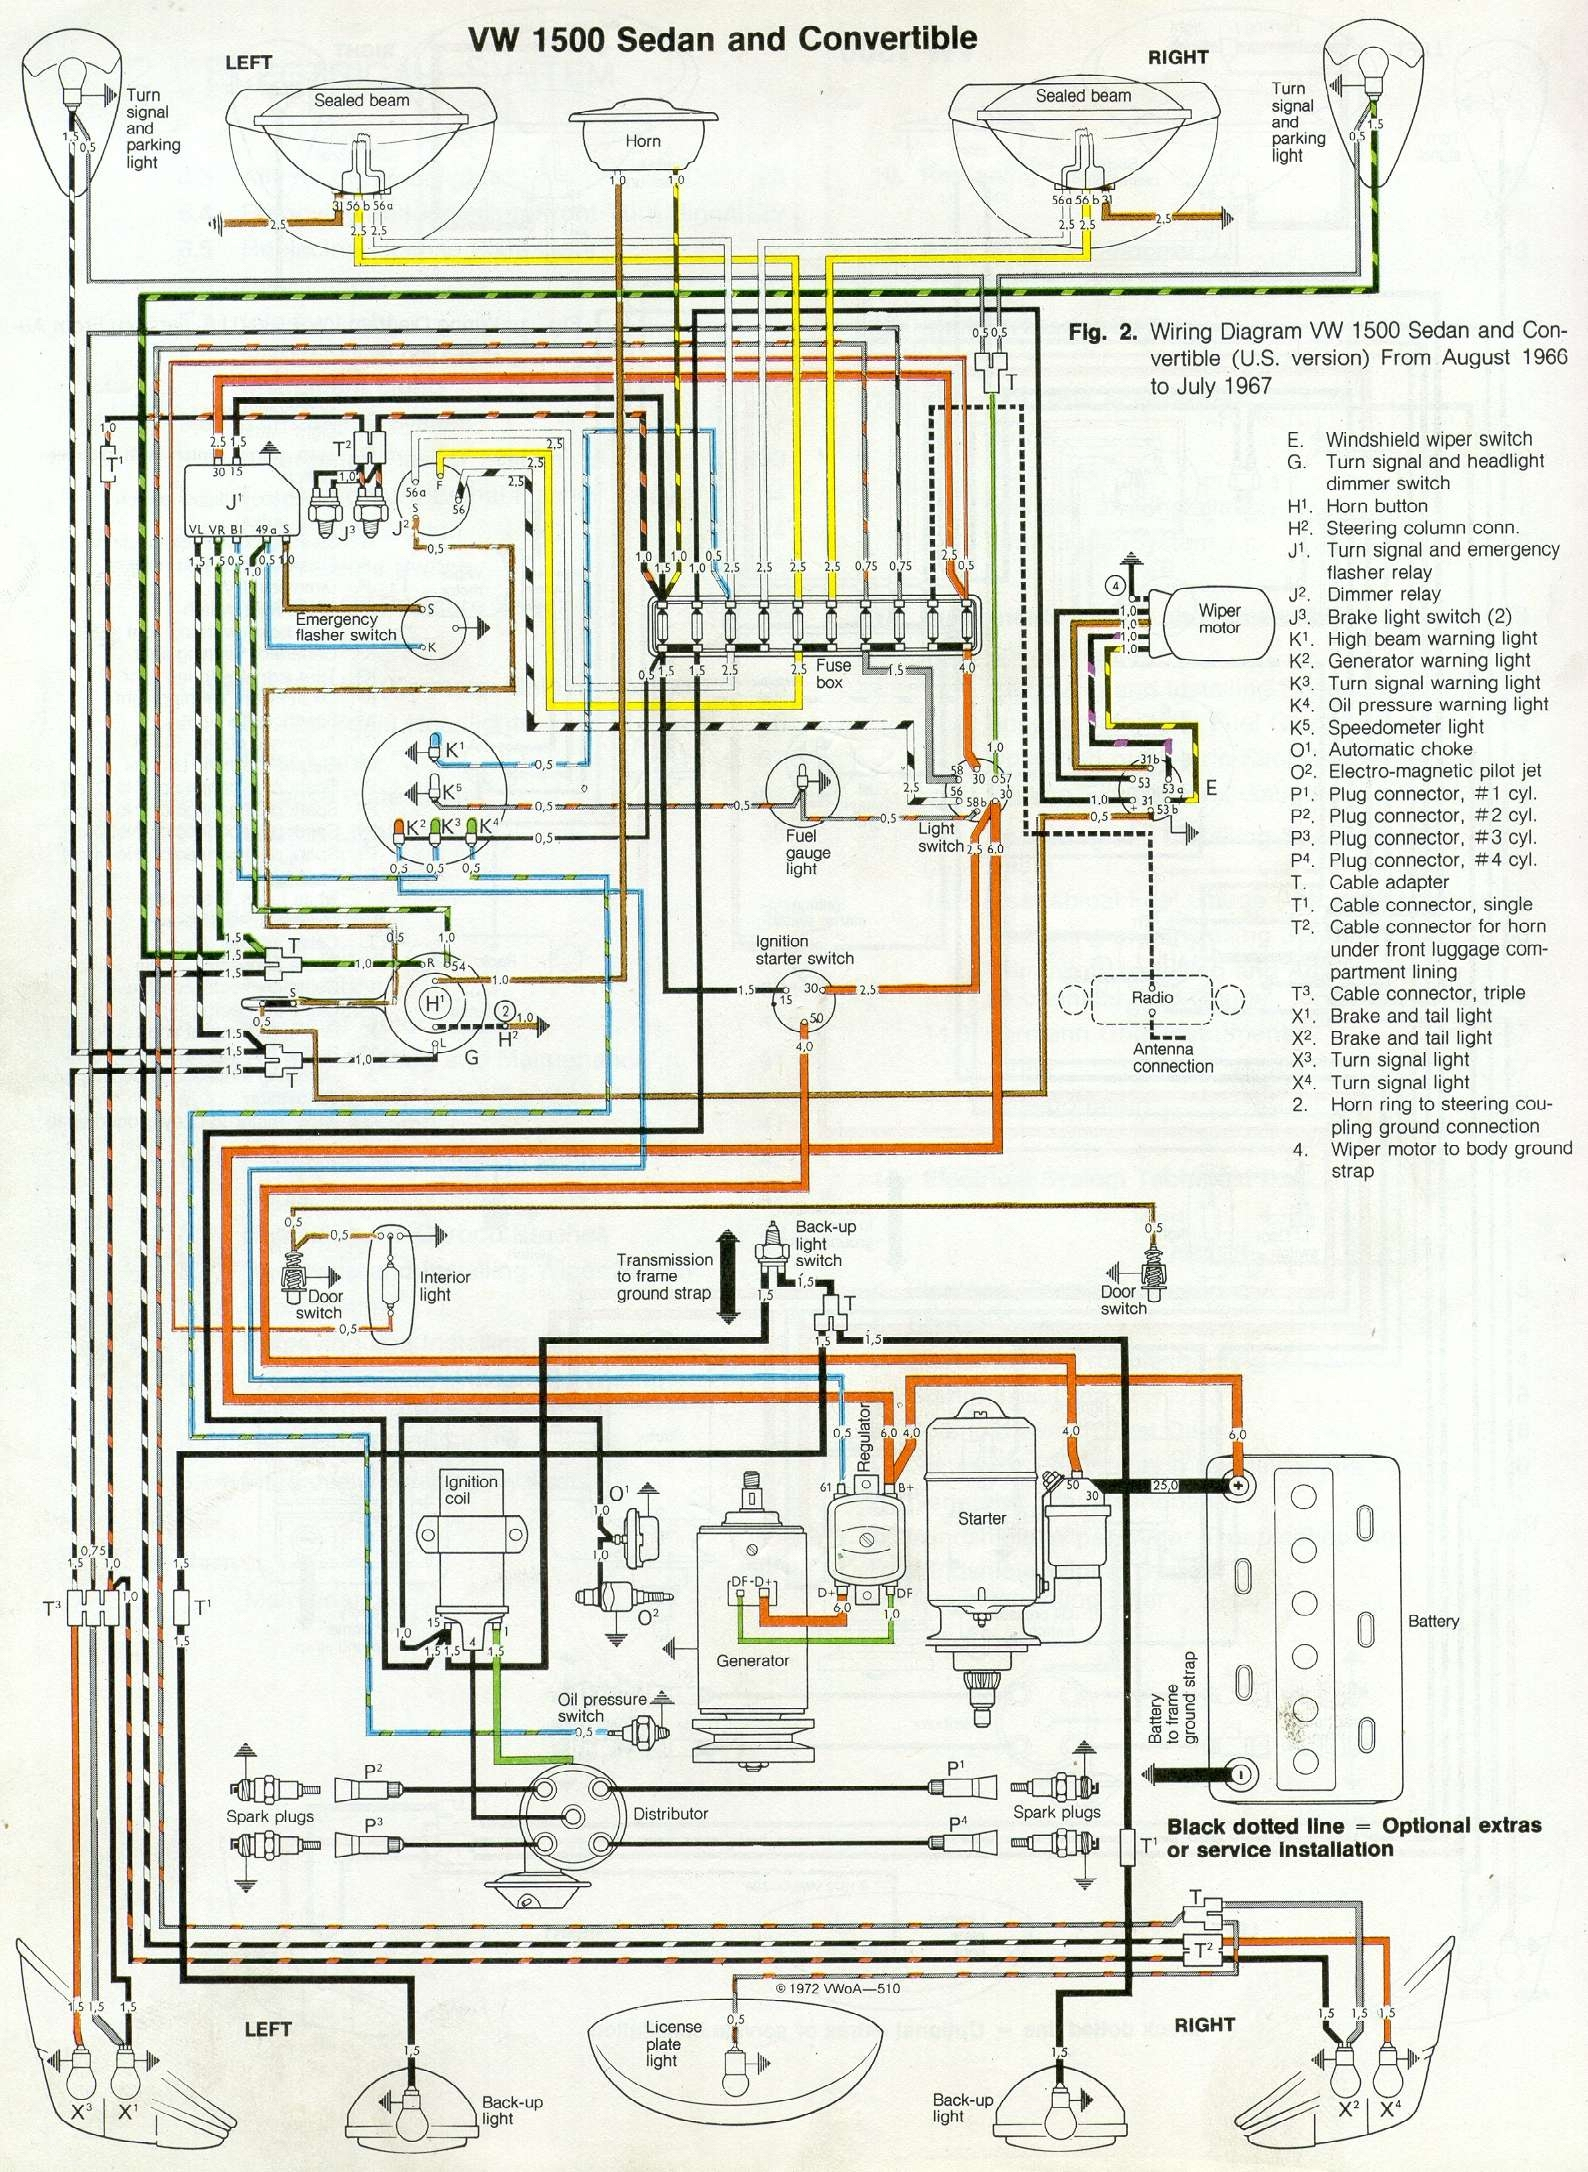 Wiring Diagrams For 1970 Vw Fast Back Schematics 1966 Barracuda Harness Bug Battery U2022 Rh Parntesis Co 1976 Beetle Diagram